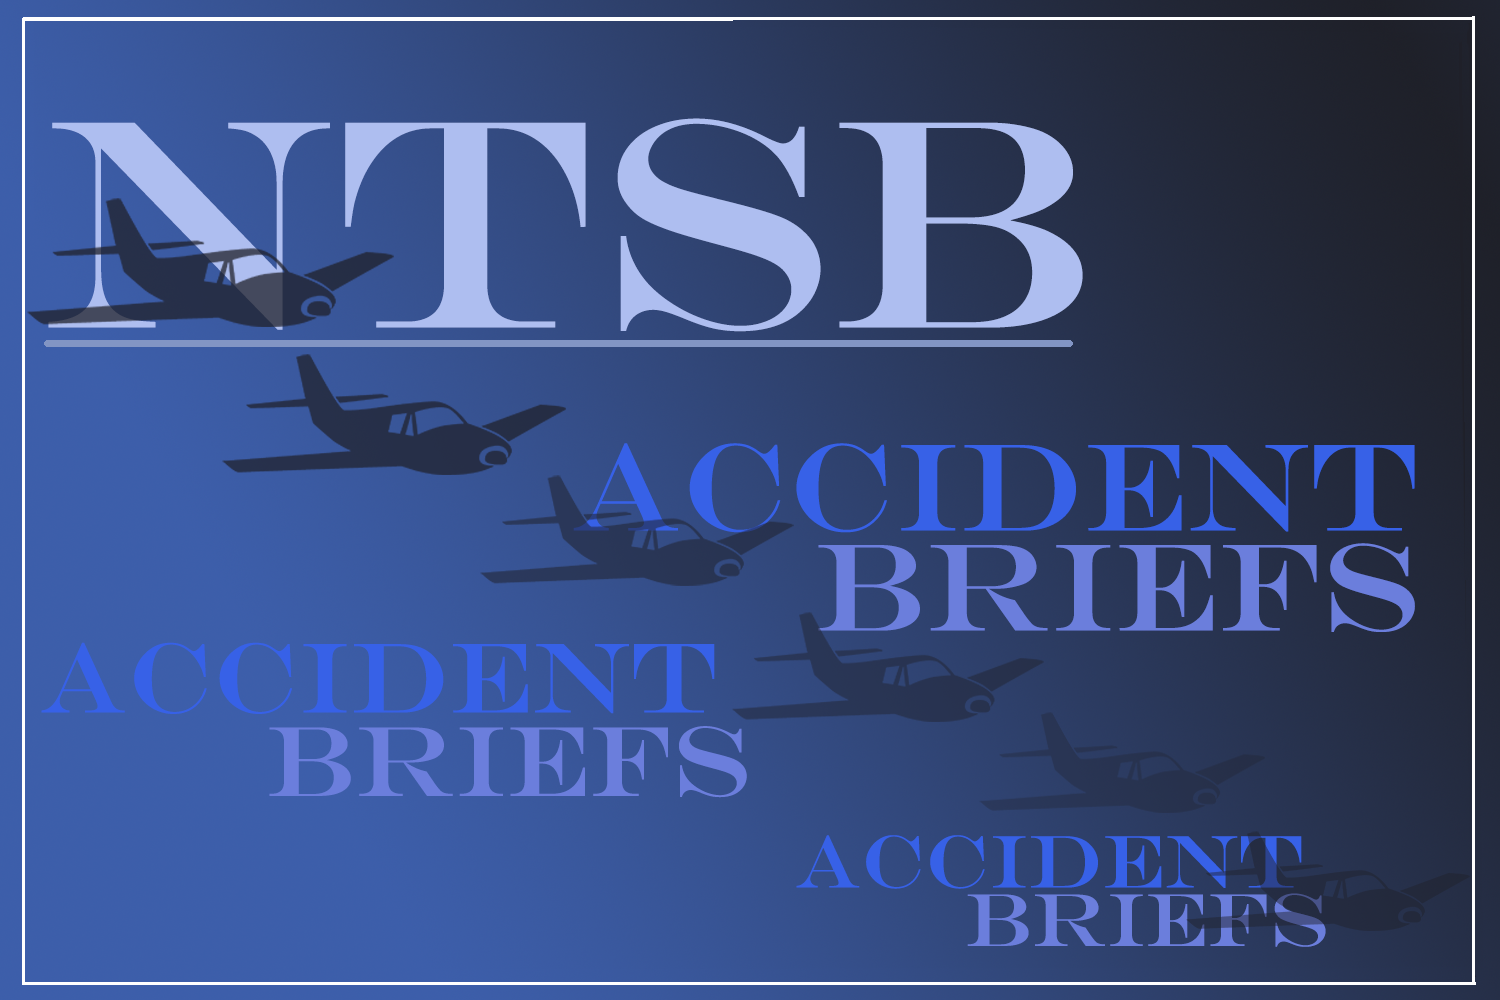 NTSB accident briefs